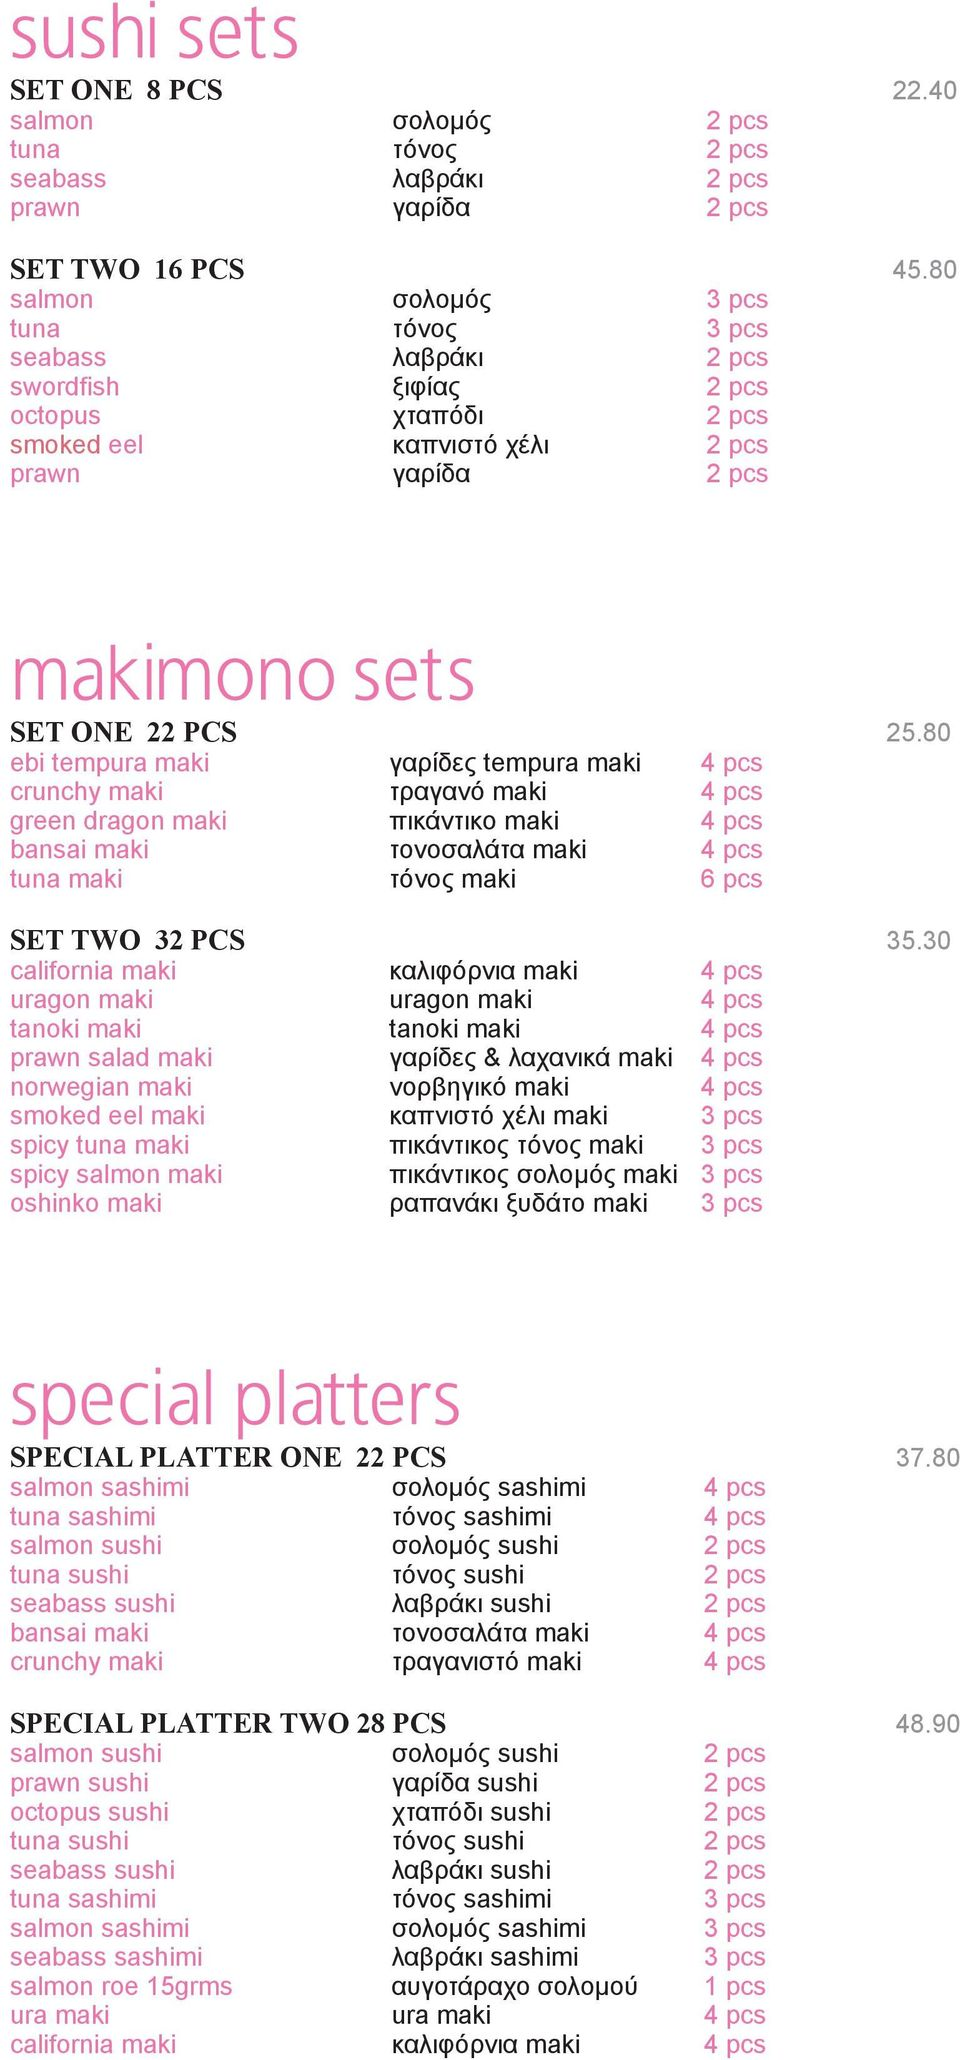 80 makimono sets SET ONE 22 PCS ebi tempura maki crunchy maki green dragon maki bansai maki tuna maki γαρίδες tempura maki τραγανό maki πικάντικο maki τονοσαλάτα maki τόνος maki 6 pcs 25.